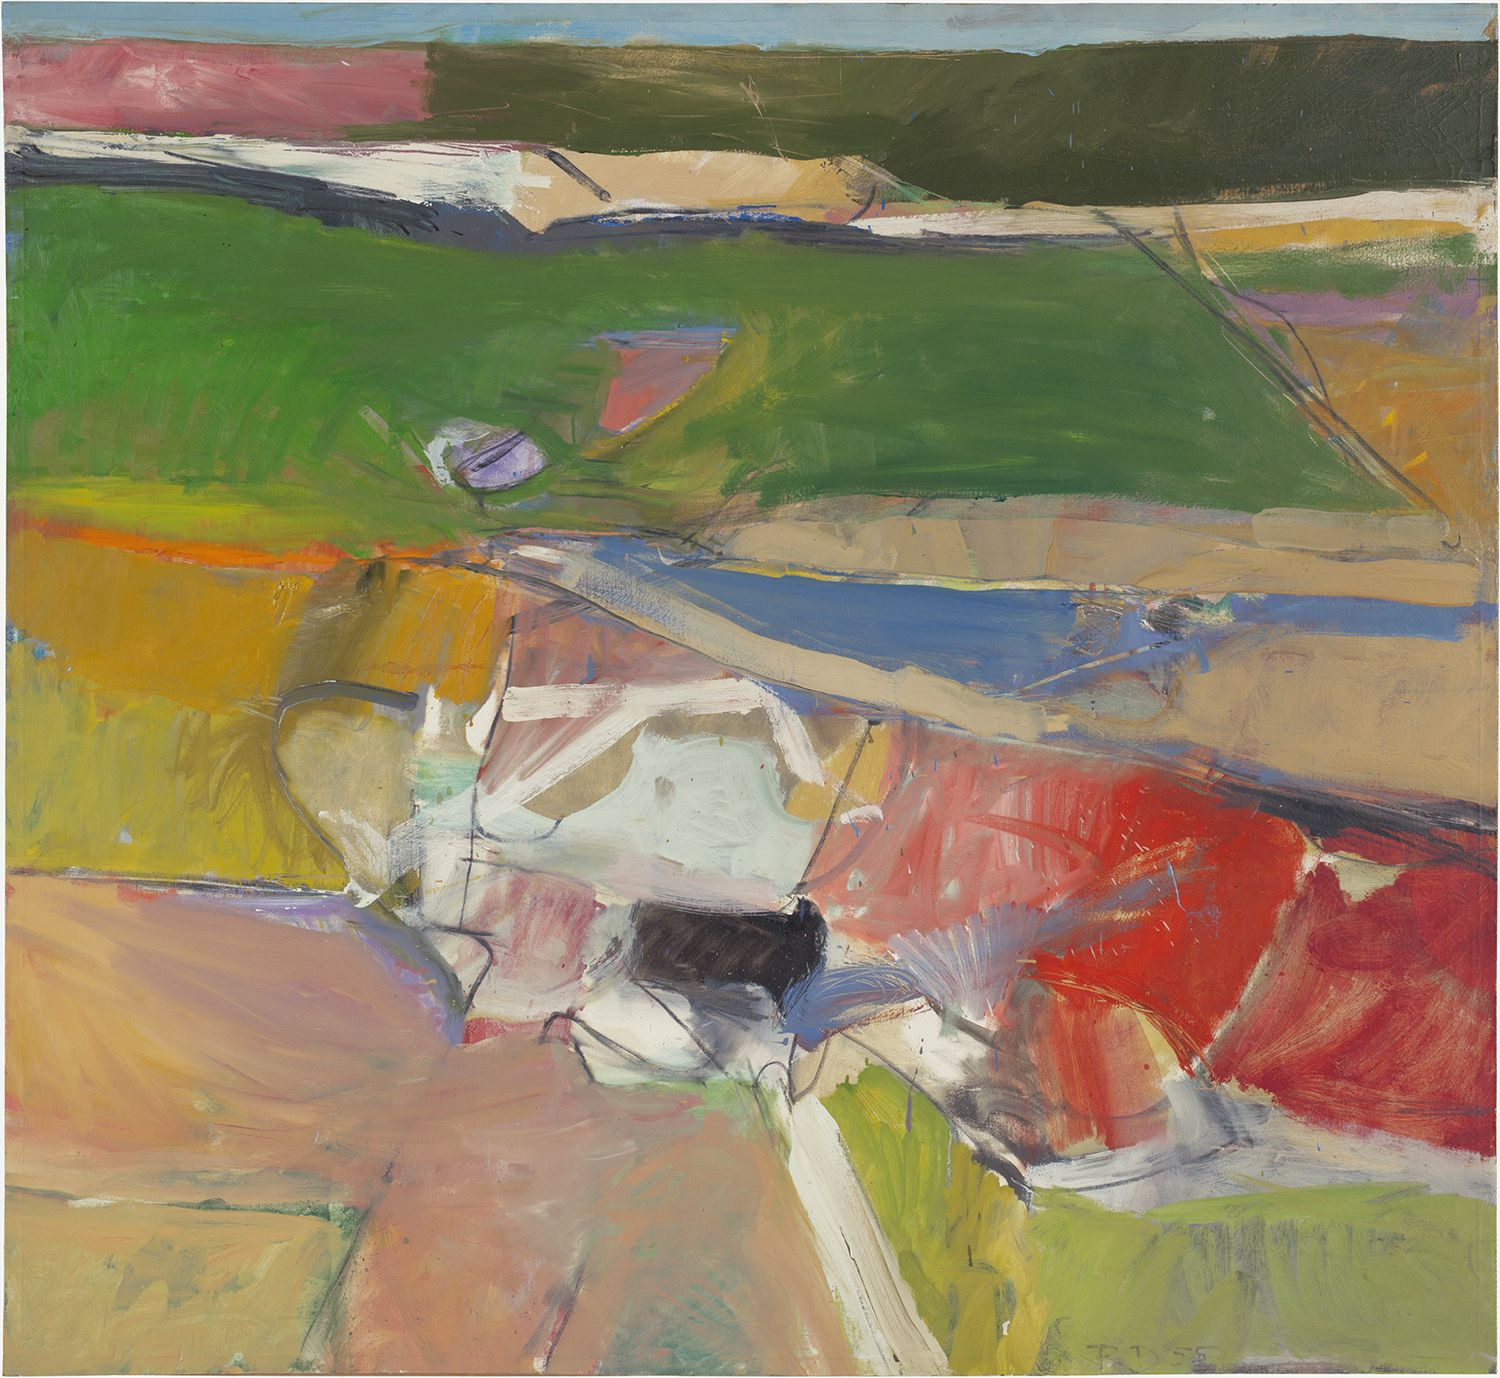 Richard Diebenkorn, Berkeley #44, 1955, Oil on canvas, 59 x 64 inches